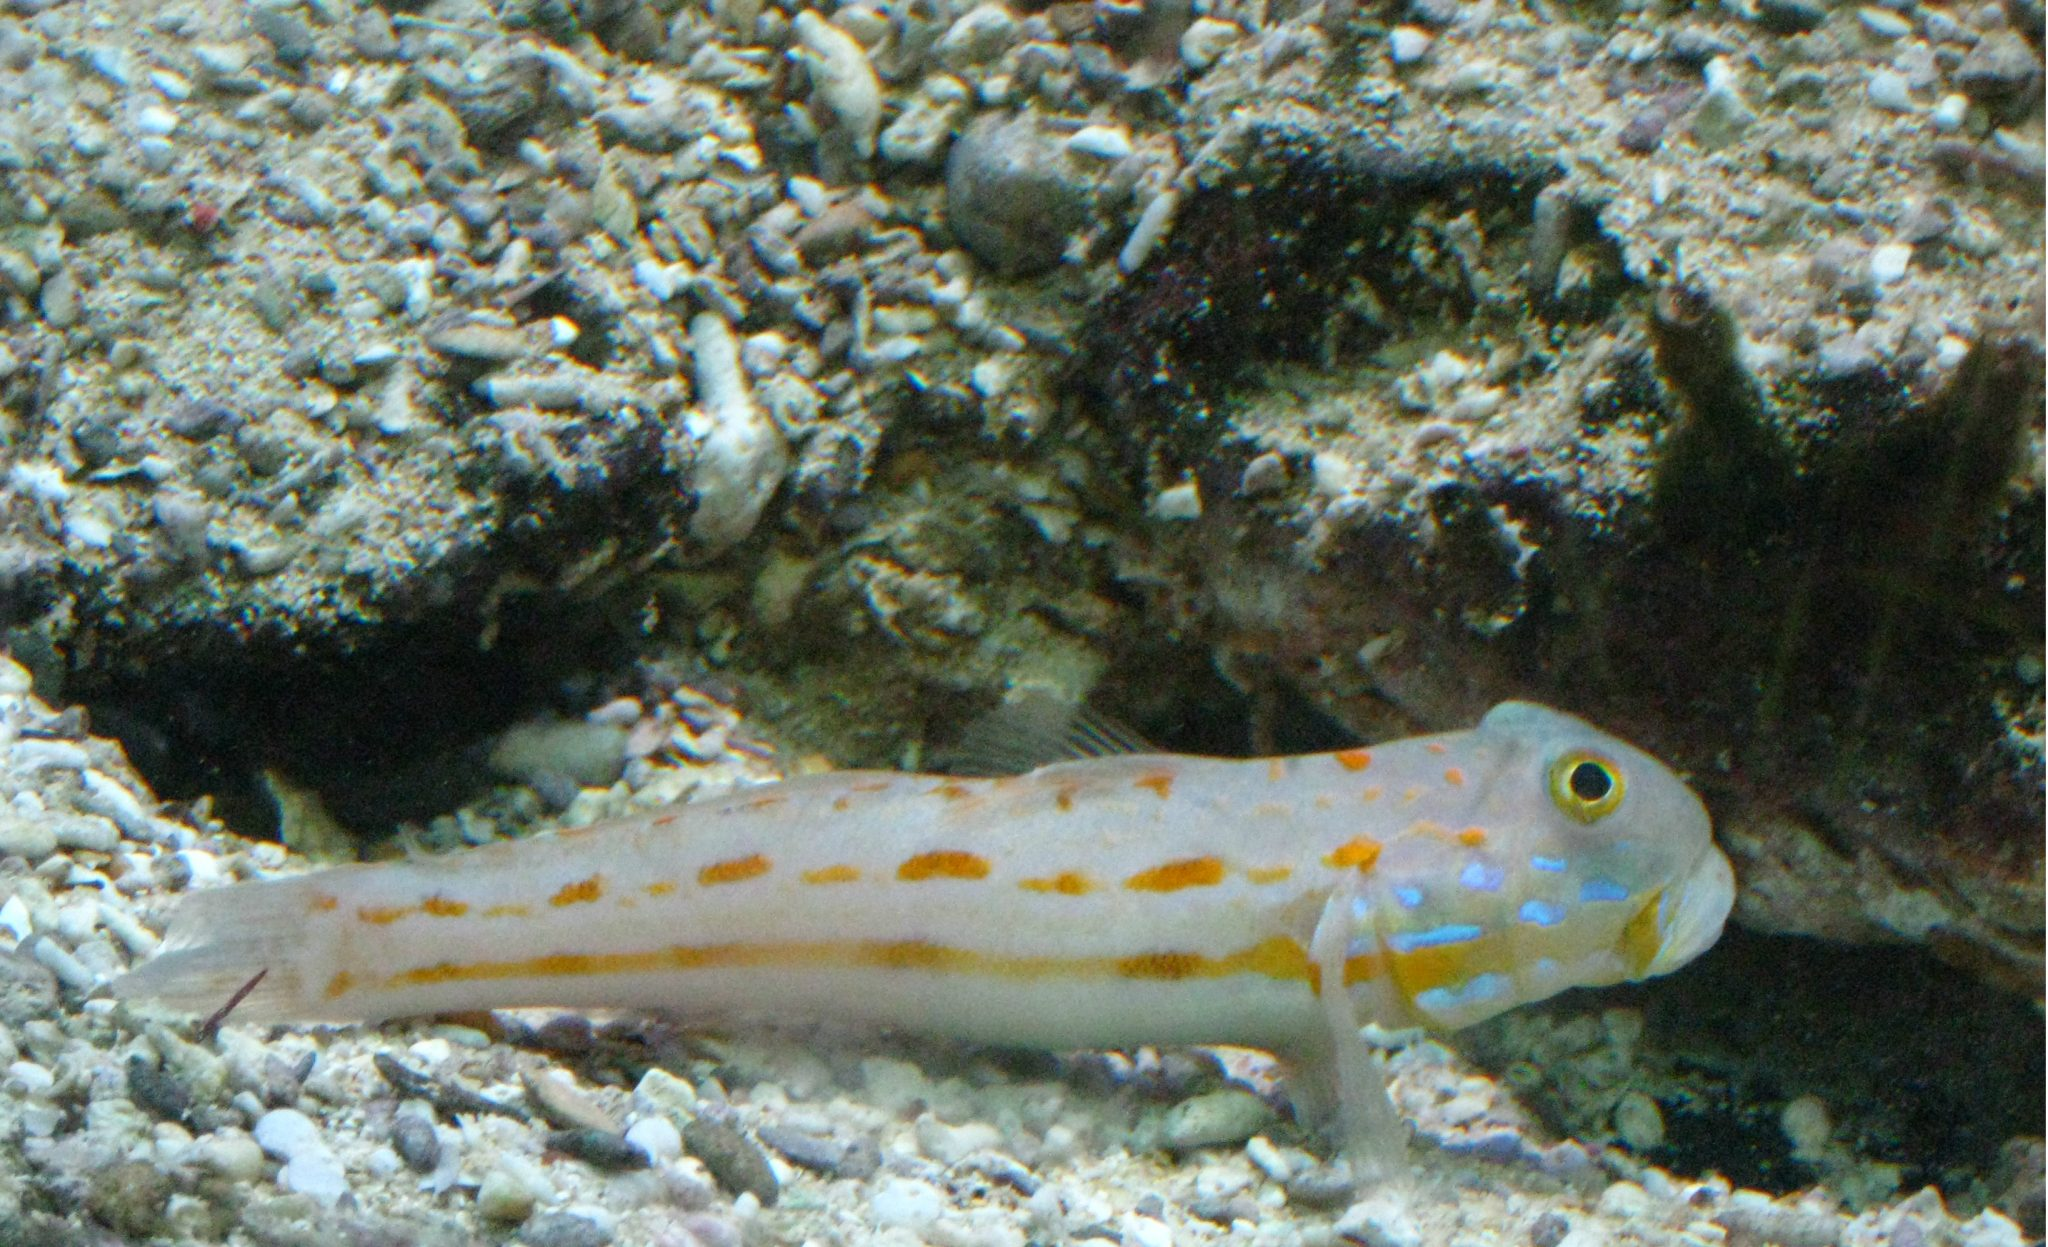 Maiden Goby, Orange-spotted Sleeper-goby, Orange-dashed Goby, Diamond Watchman Goby